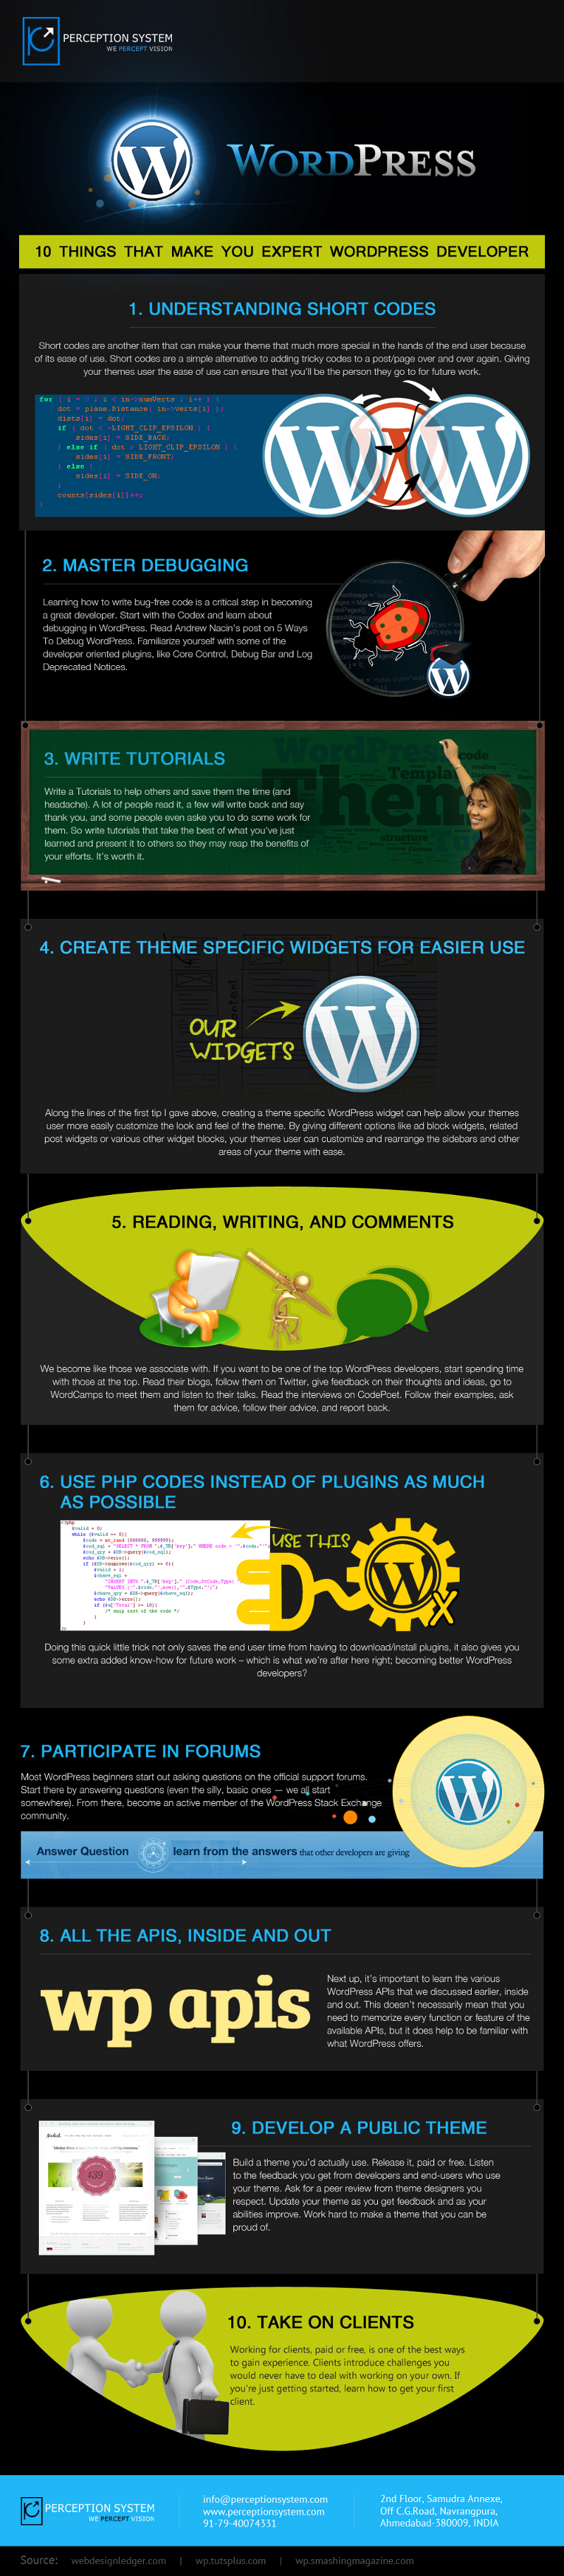 Tips to Developing Your WordPress Site